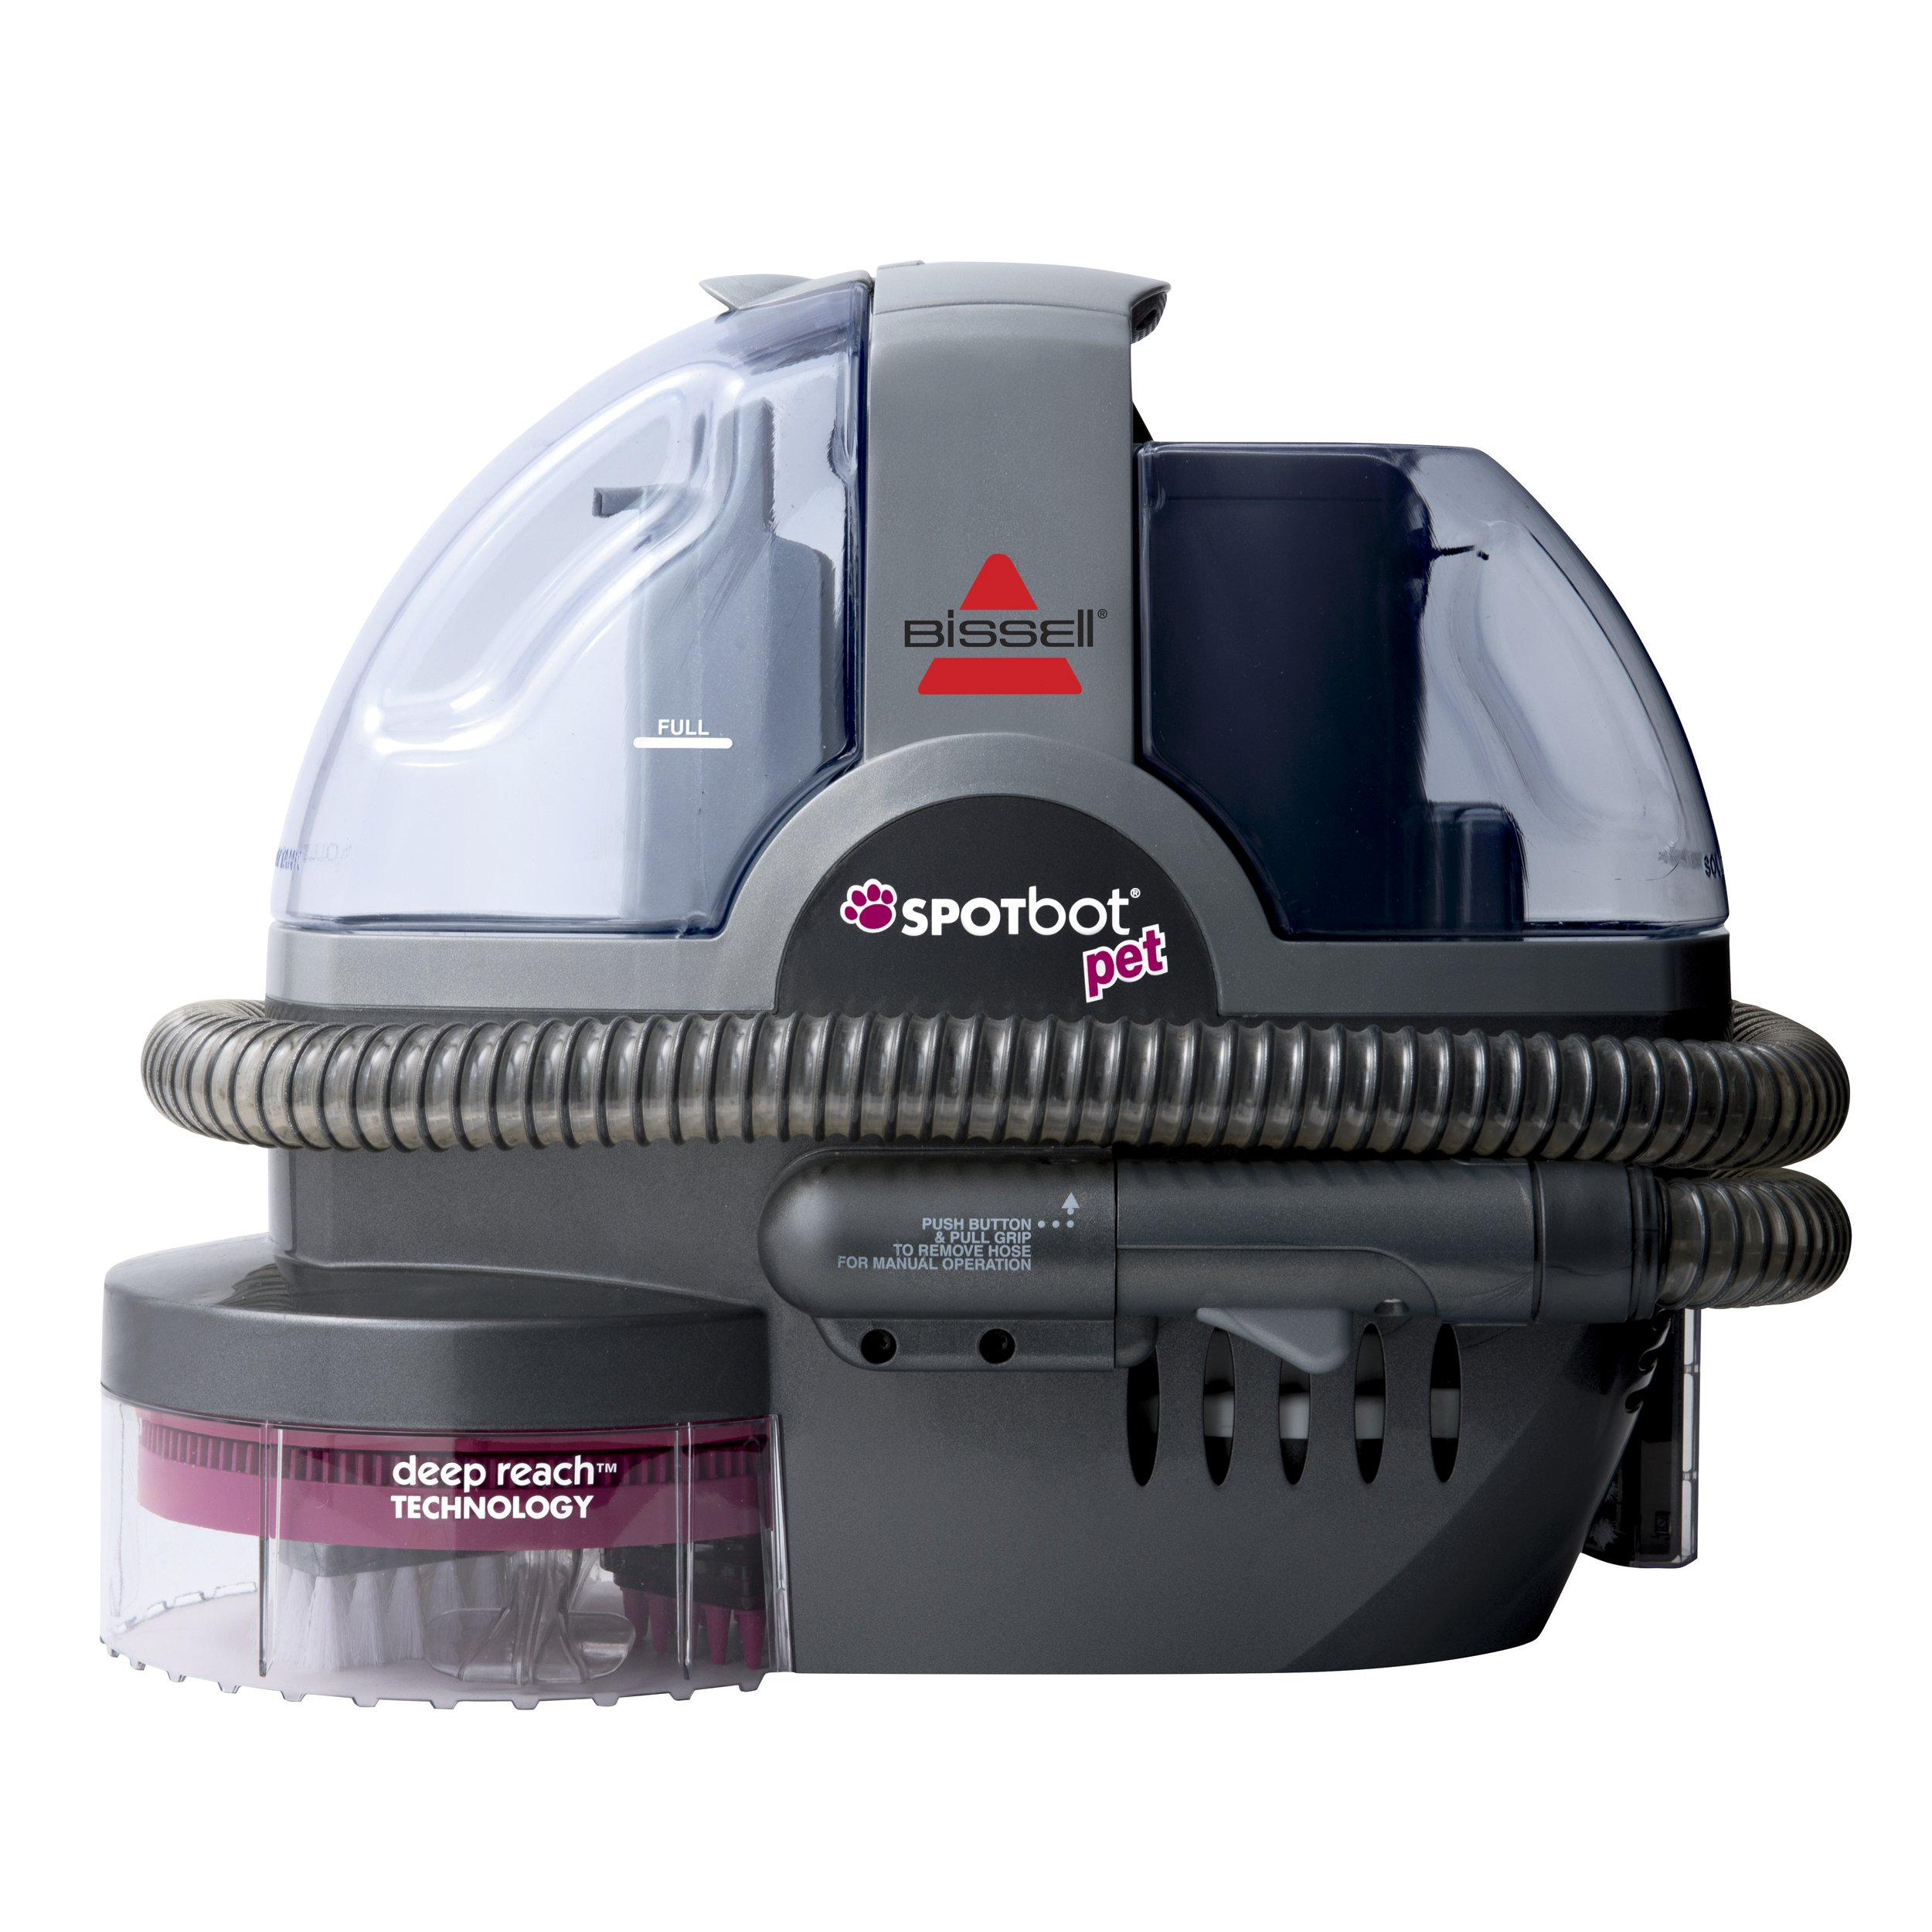 BISSELL SpotBot Pet Handsfree Spot and Stain Portable Carpet and Upholstery Cleaner, 33N8A by Bissell